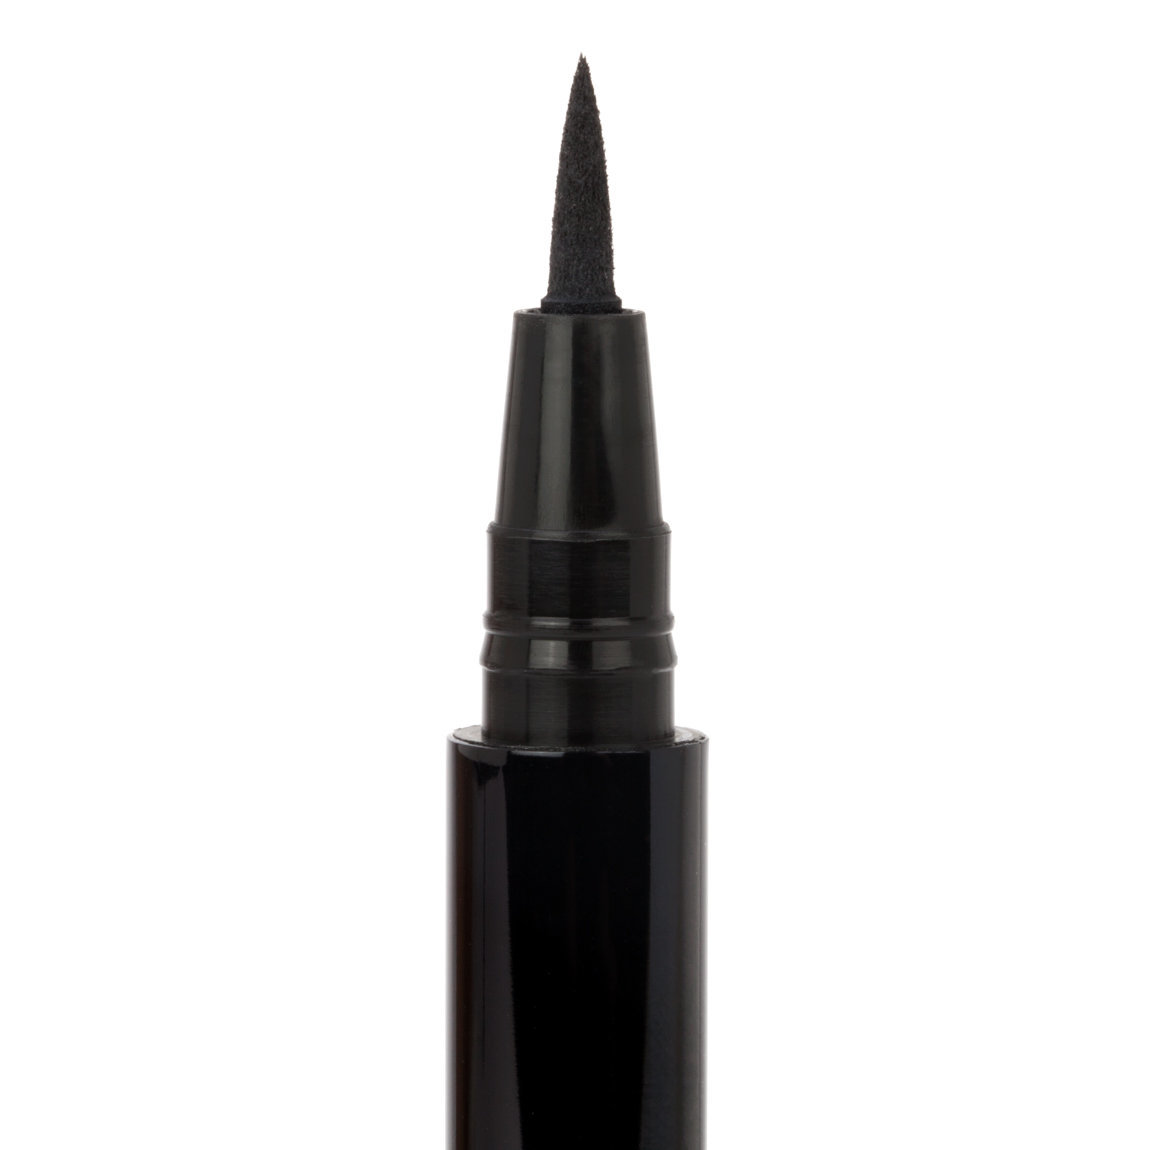 Sisley-Paris So Intense Eyeliner